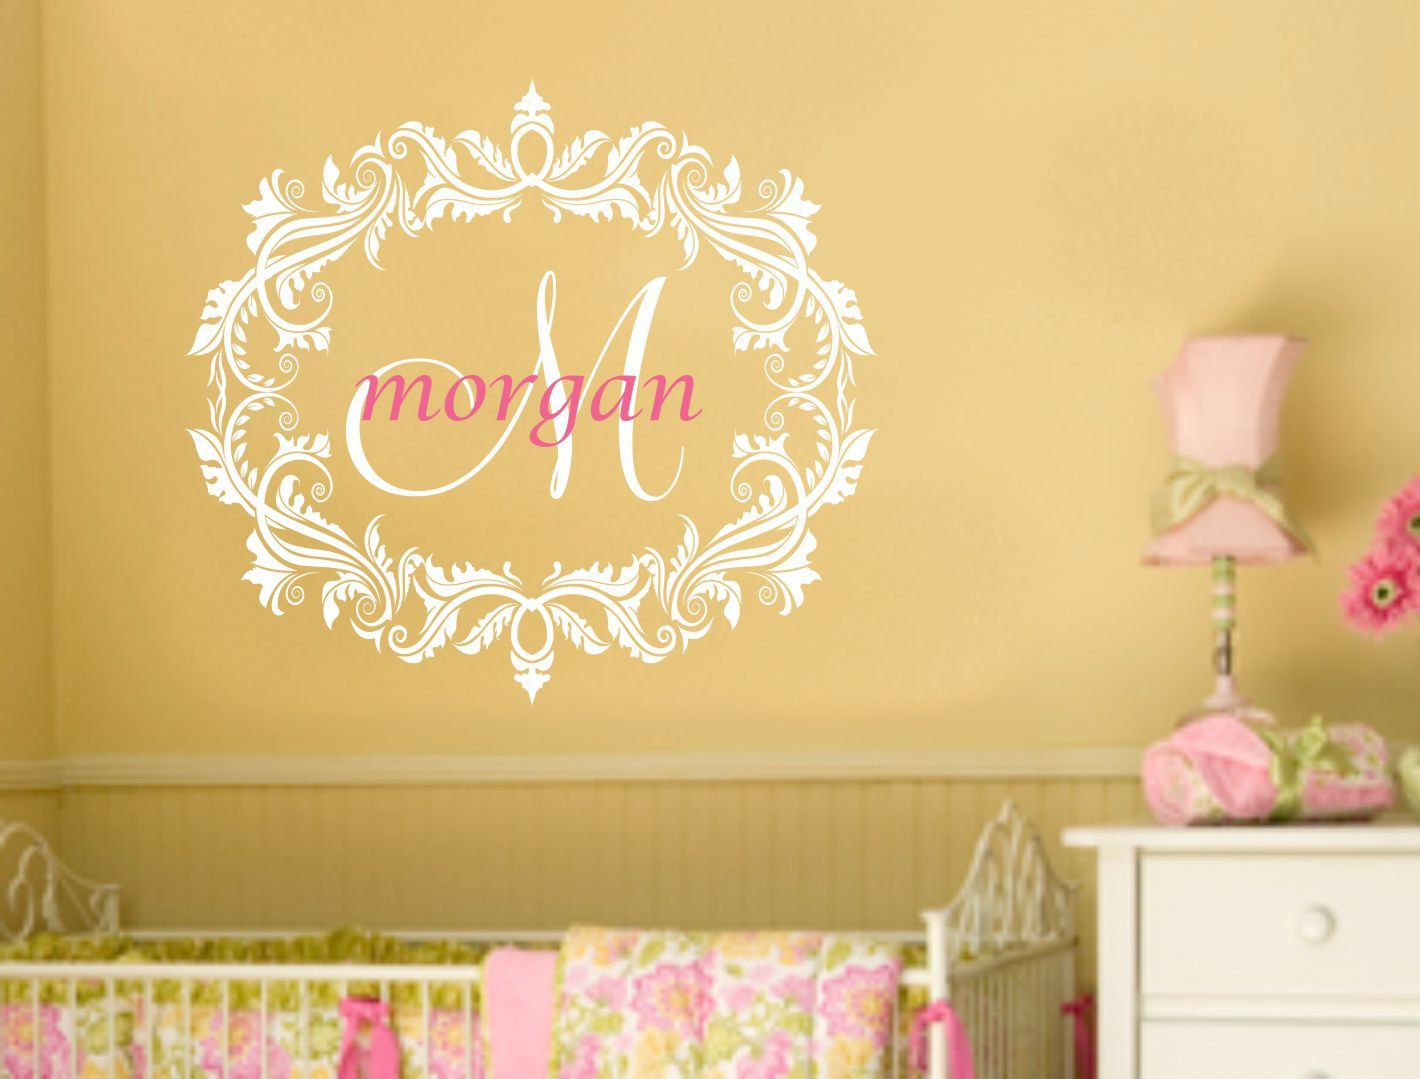 Wall Decals Nursery Monogram Wall Decal Baby Name Decals Coral - Monogram wall decals for nursery